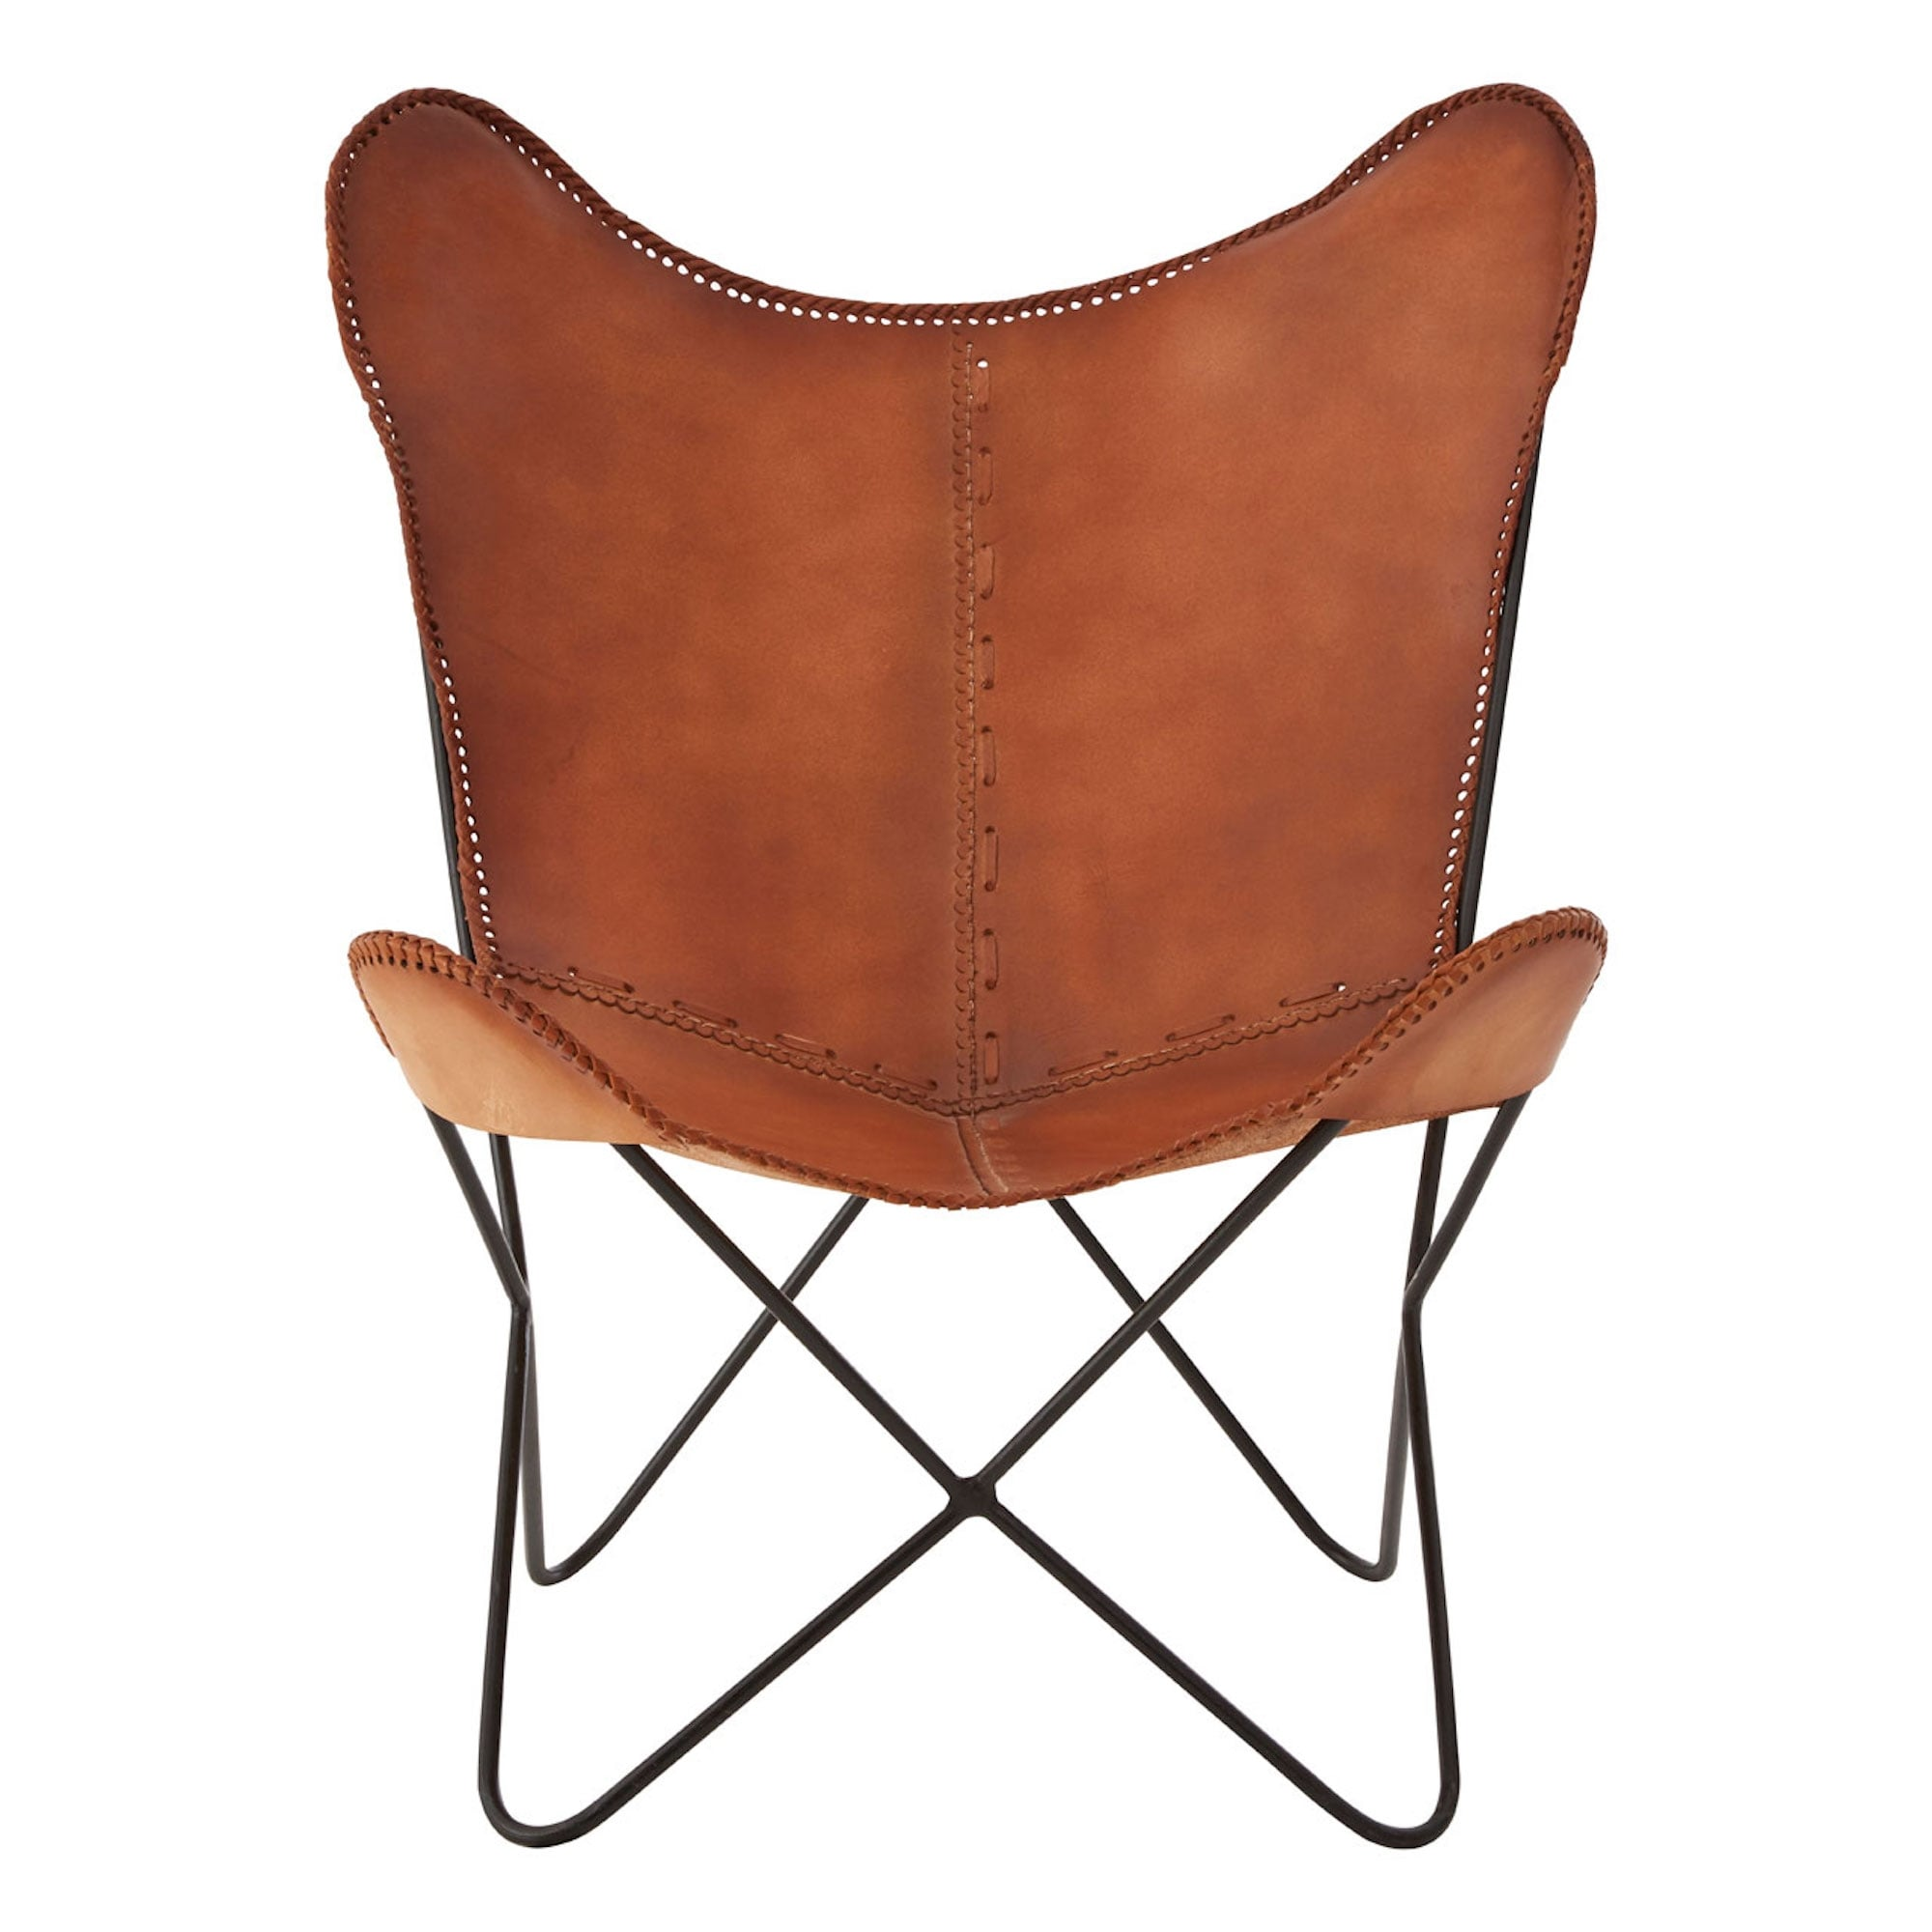 Brown Leather Butterfly Chair Brown Buffalo Leather Butterfly Chair With Iron Frame